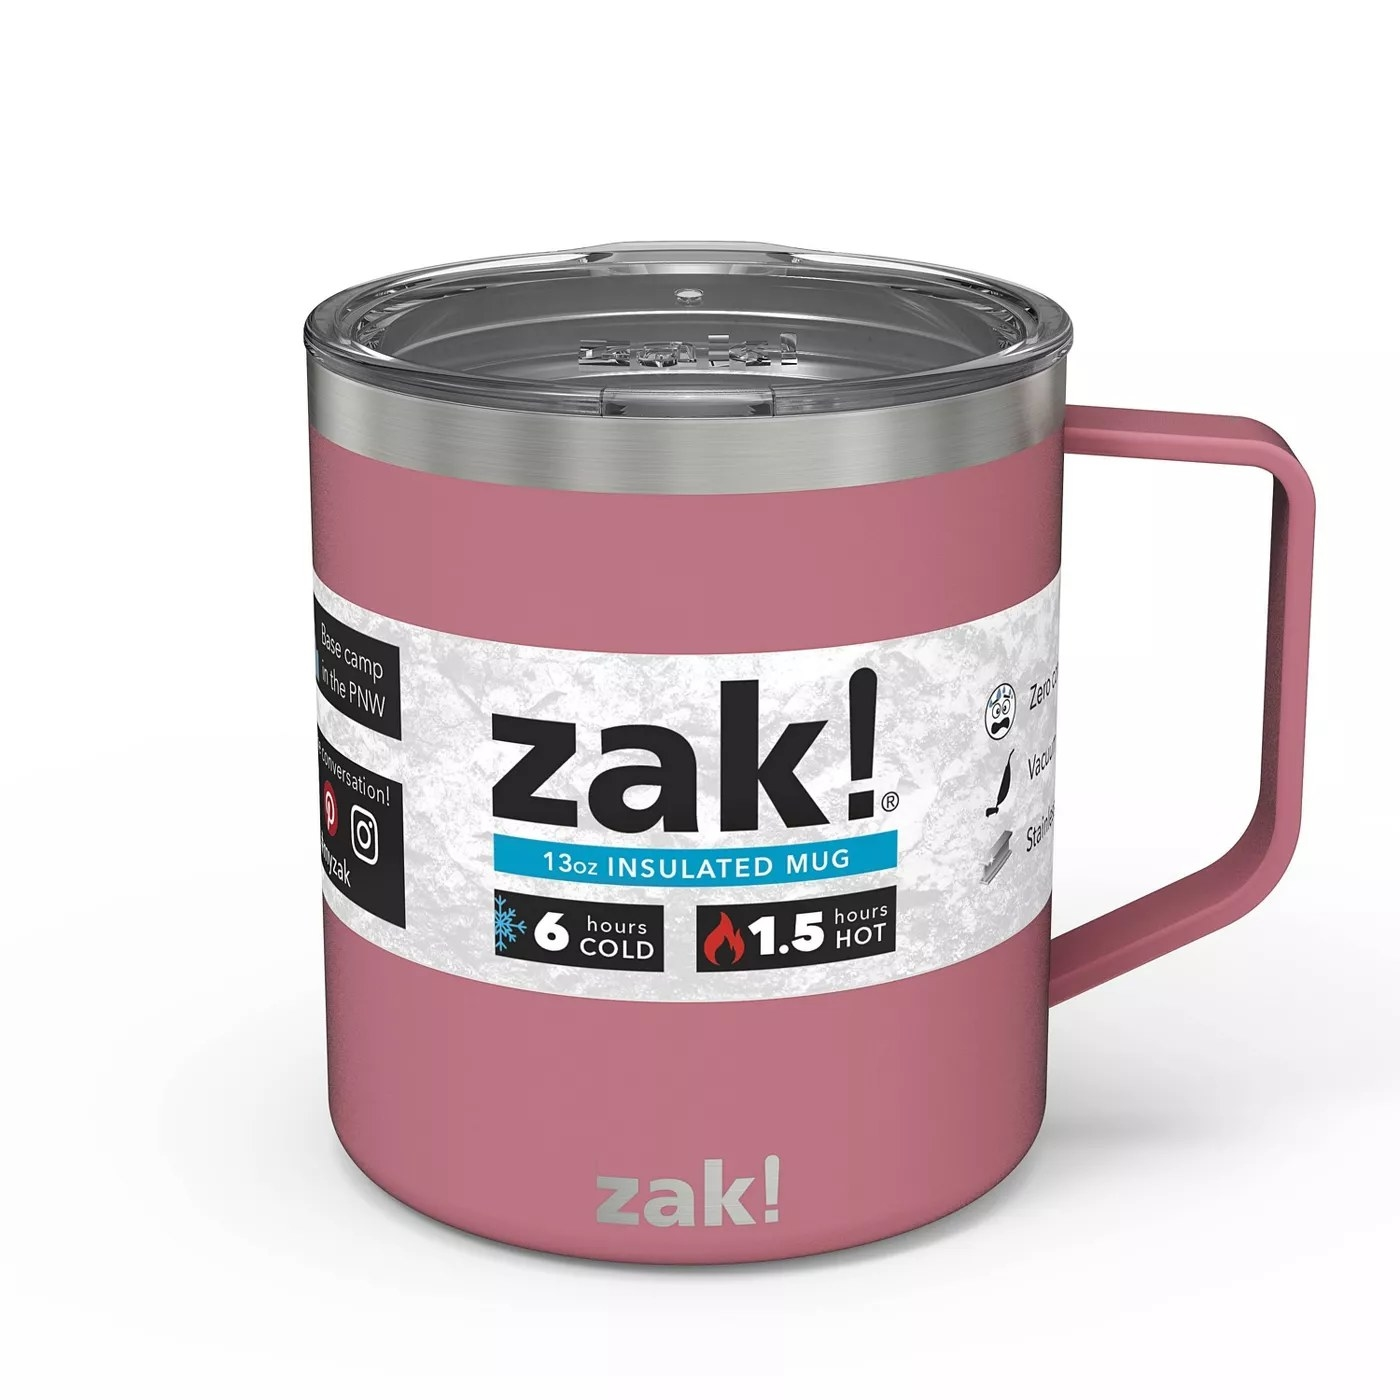 The insulated mug in pink that can keep beverages cold for up to six hours and hot for up to 1.5 hours